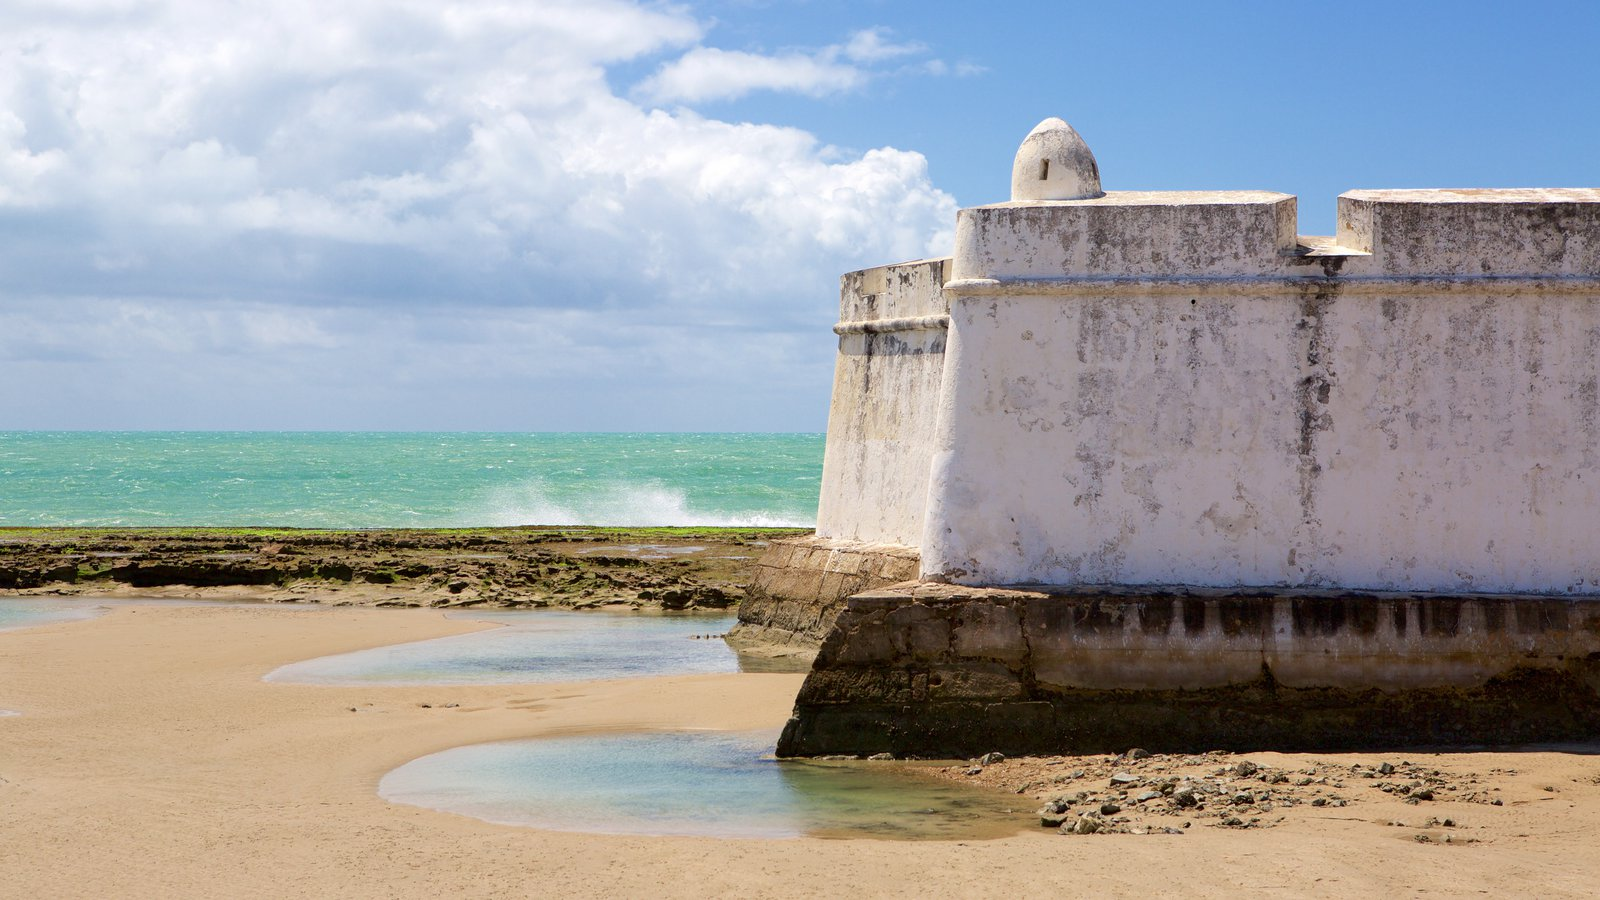 Fort of the Three Kings which includes heritage elements, general coastal views and a beach